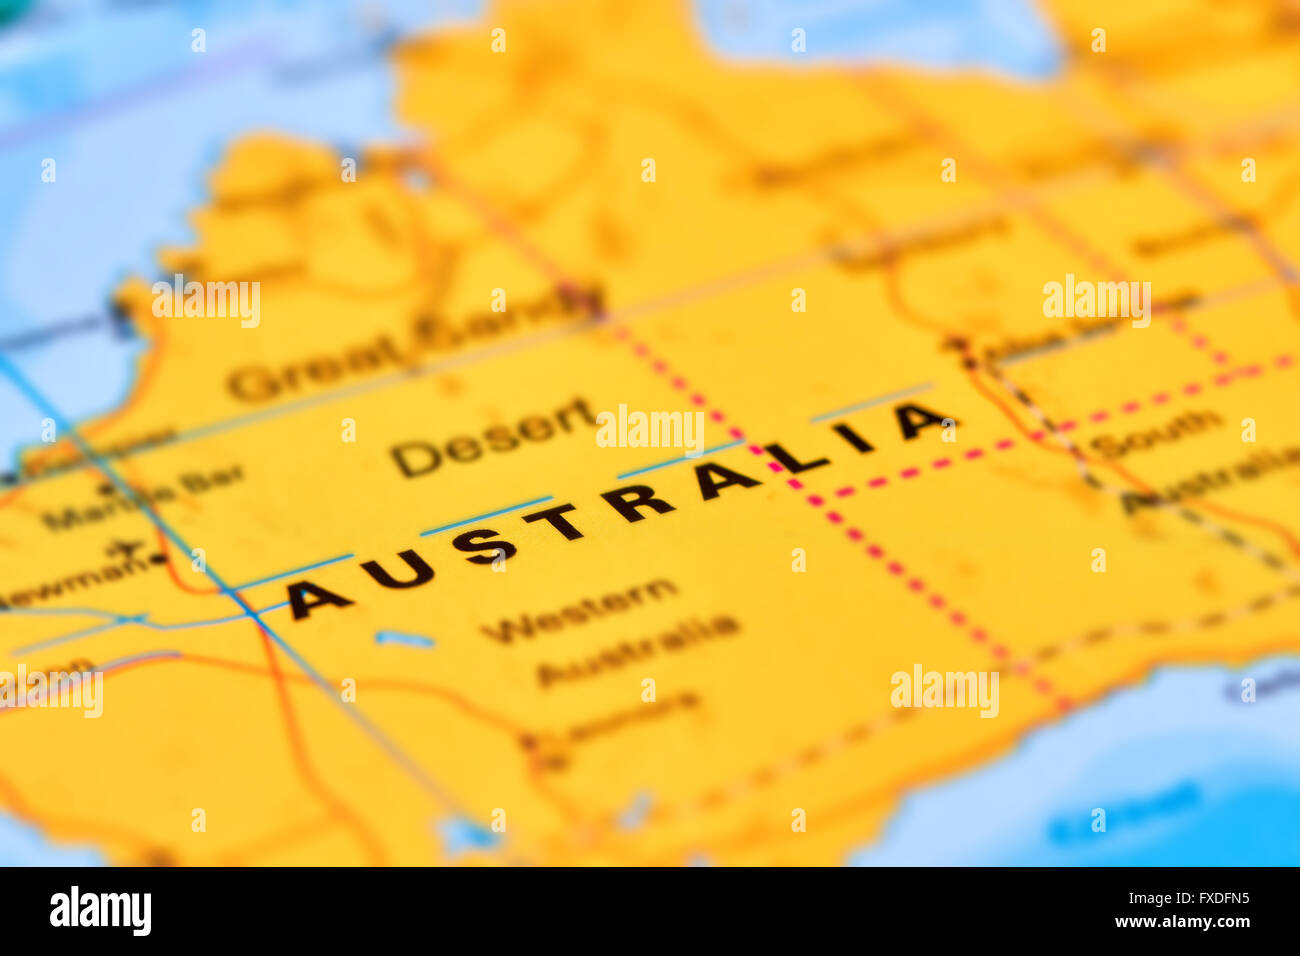 Australia continent and country on the world map stock photo australia continent and country on the world map gumiabroncs Images